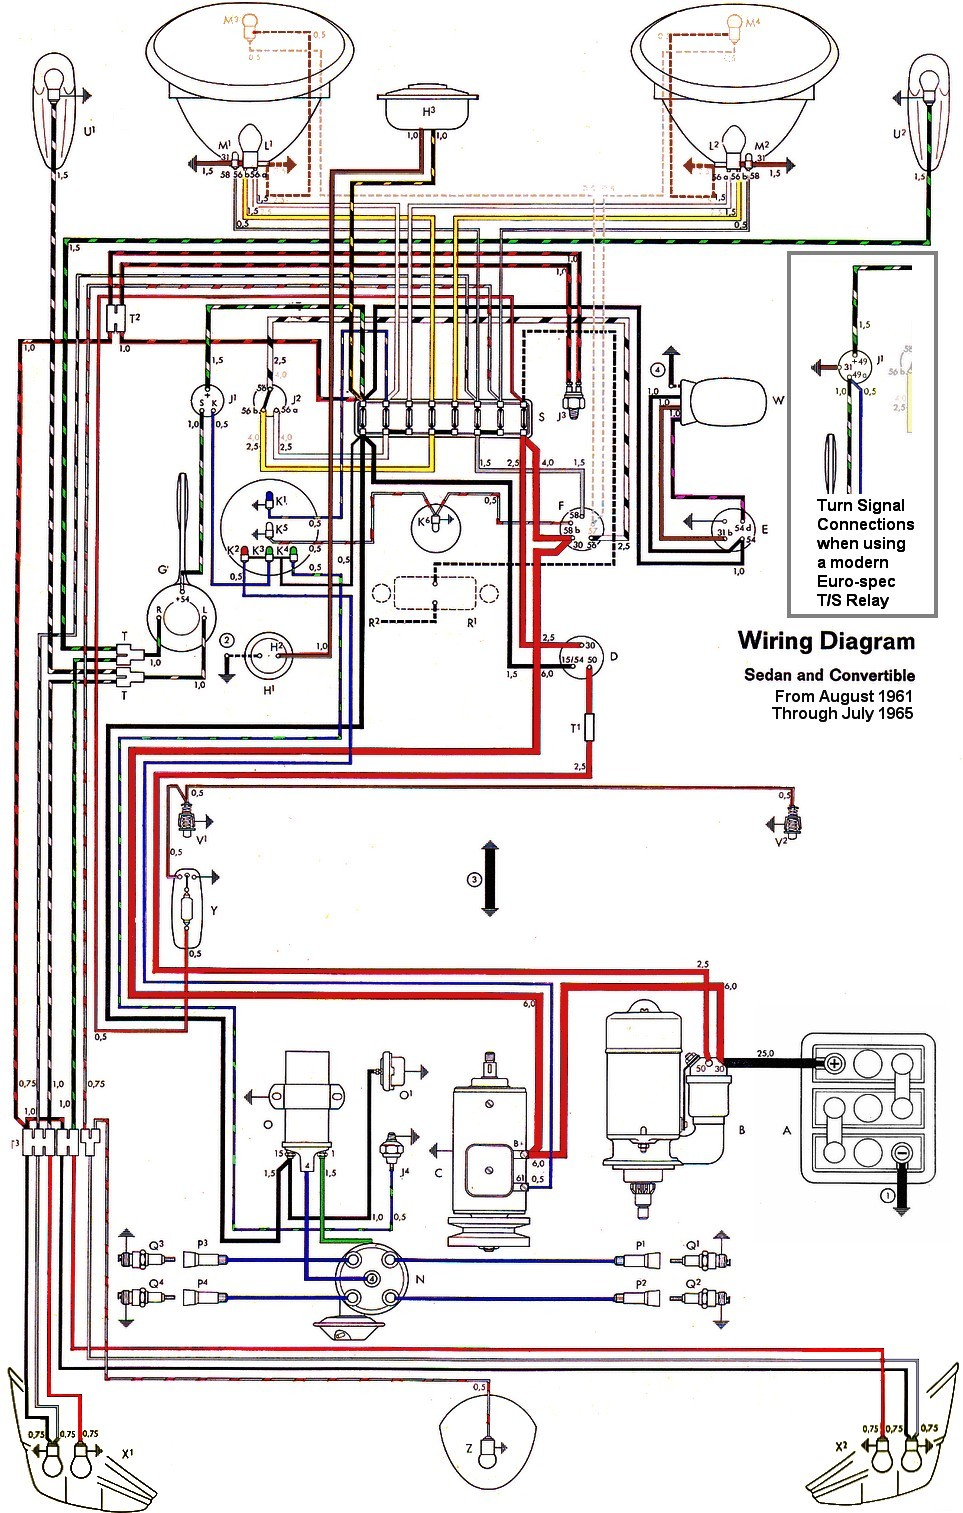 2000 vw beetle headlight wiring diagram cb400 vtec data